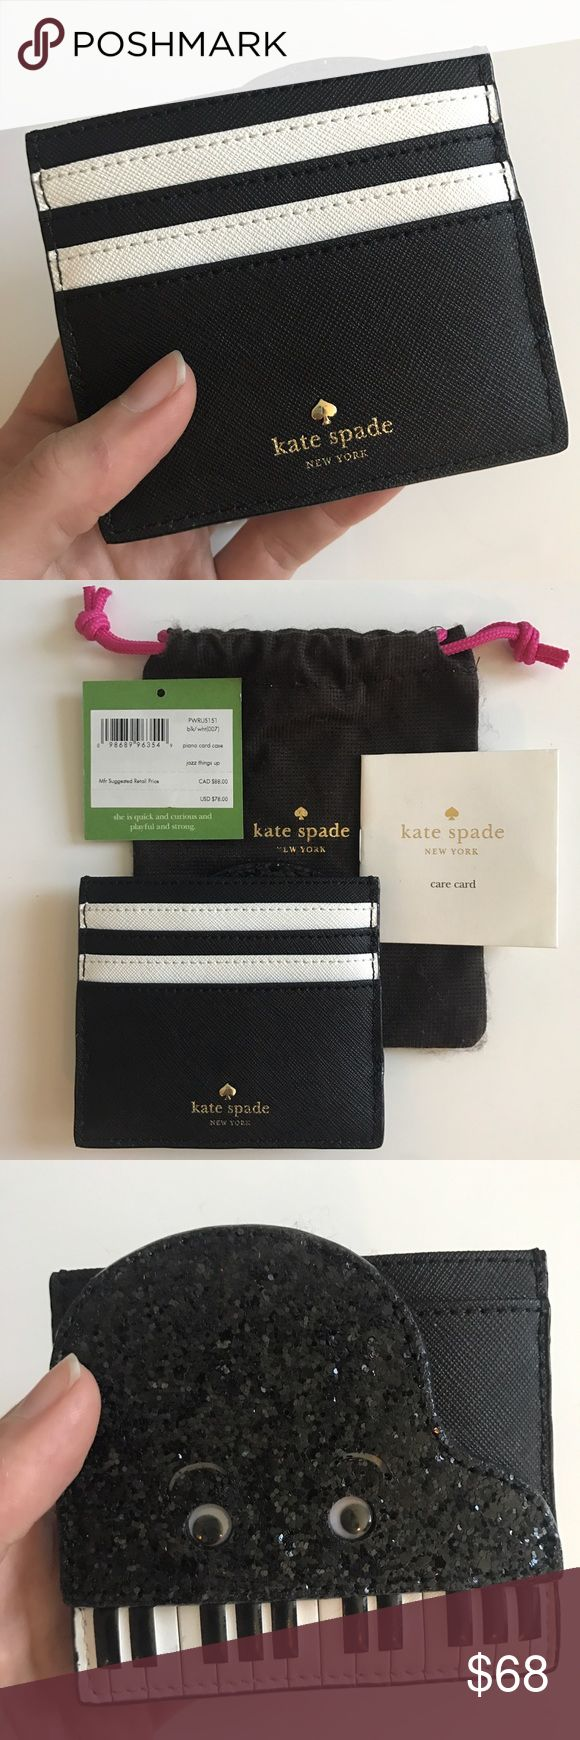 """Kate Spade Wallet -- Brand New with $78 tag Brand new, never used.  Mfr Suggested Retail Price $78.00 plus tax.  Piano Card Case """"Jazz Things Up"""" - PWRU5151 blk/wht(007)  Designer wallet / card carrying case.  Black glitter, black-and-white piano keys.  Shaped like a cute grand piano with caricature eyes that move.  Has 5 card slots with one large money slot.  Includes brown cotton case / dust bag, the price tag, and care card. kate spade Bags Wallets"""